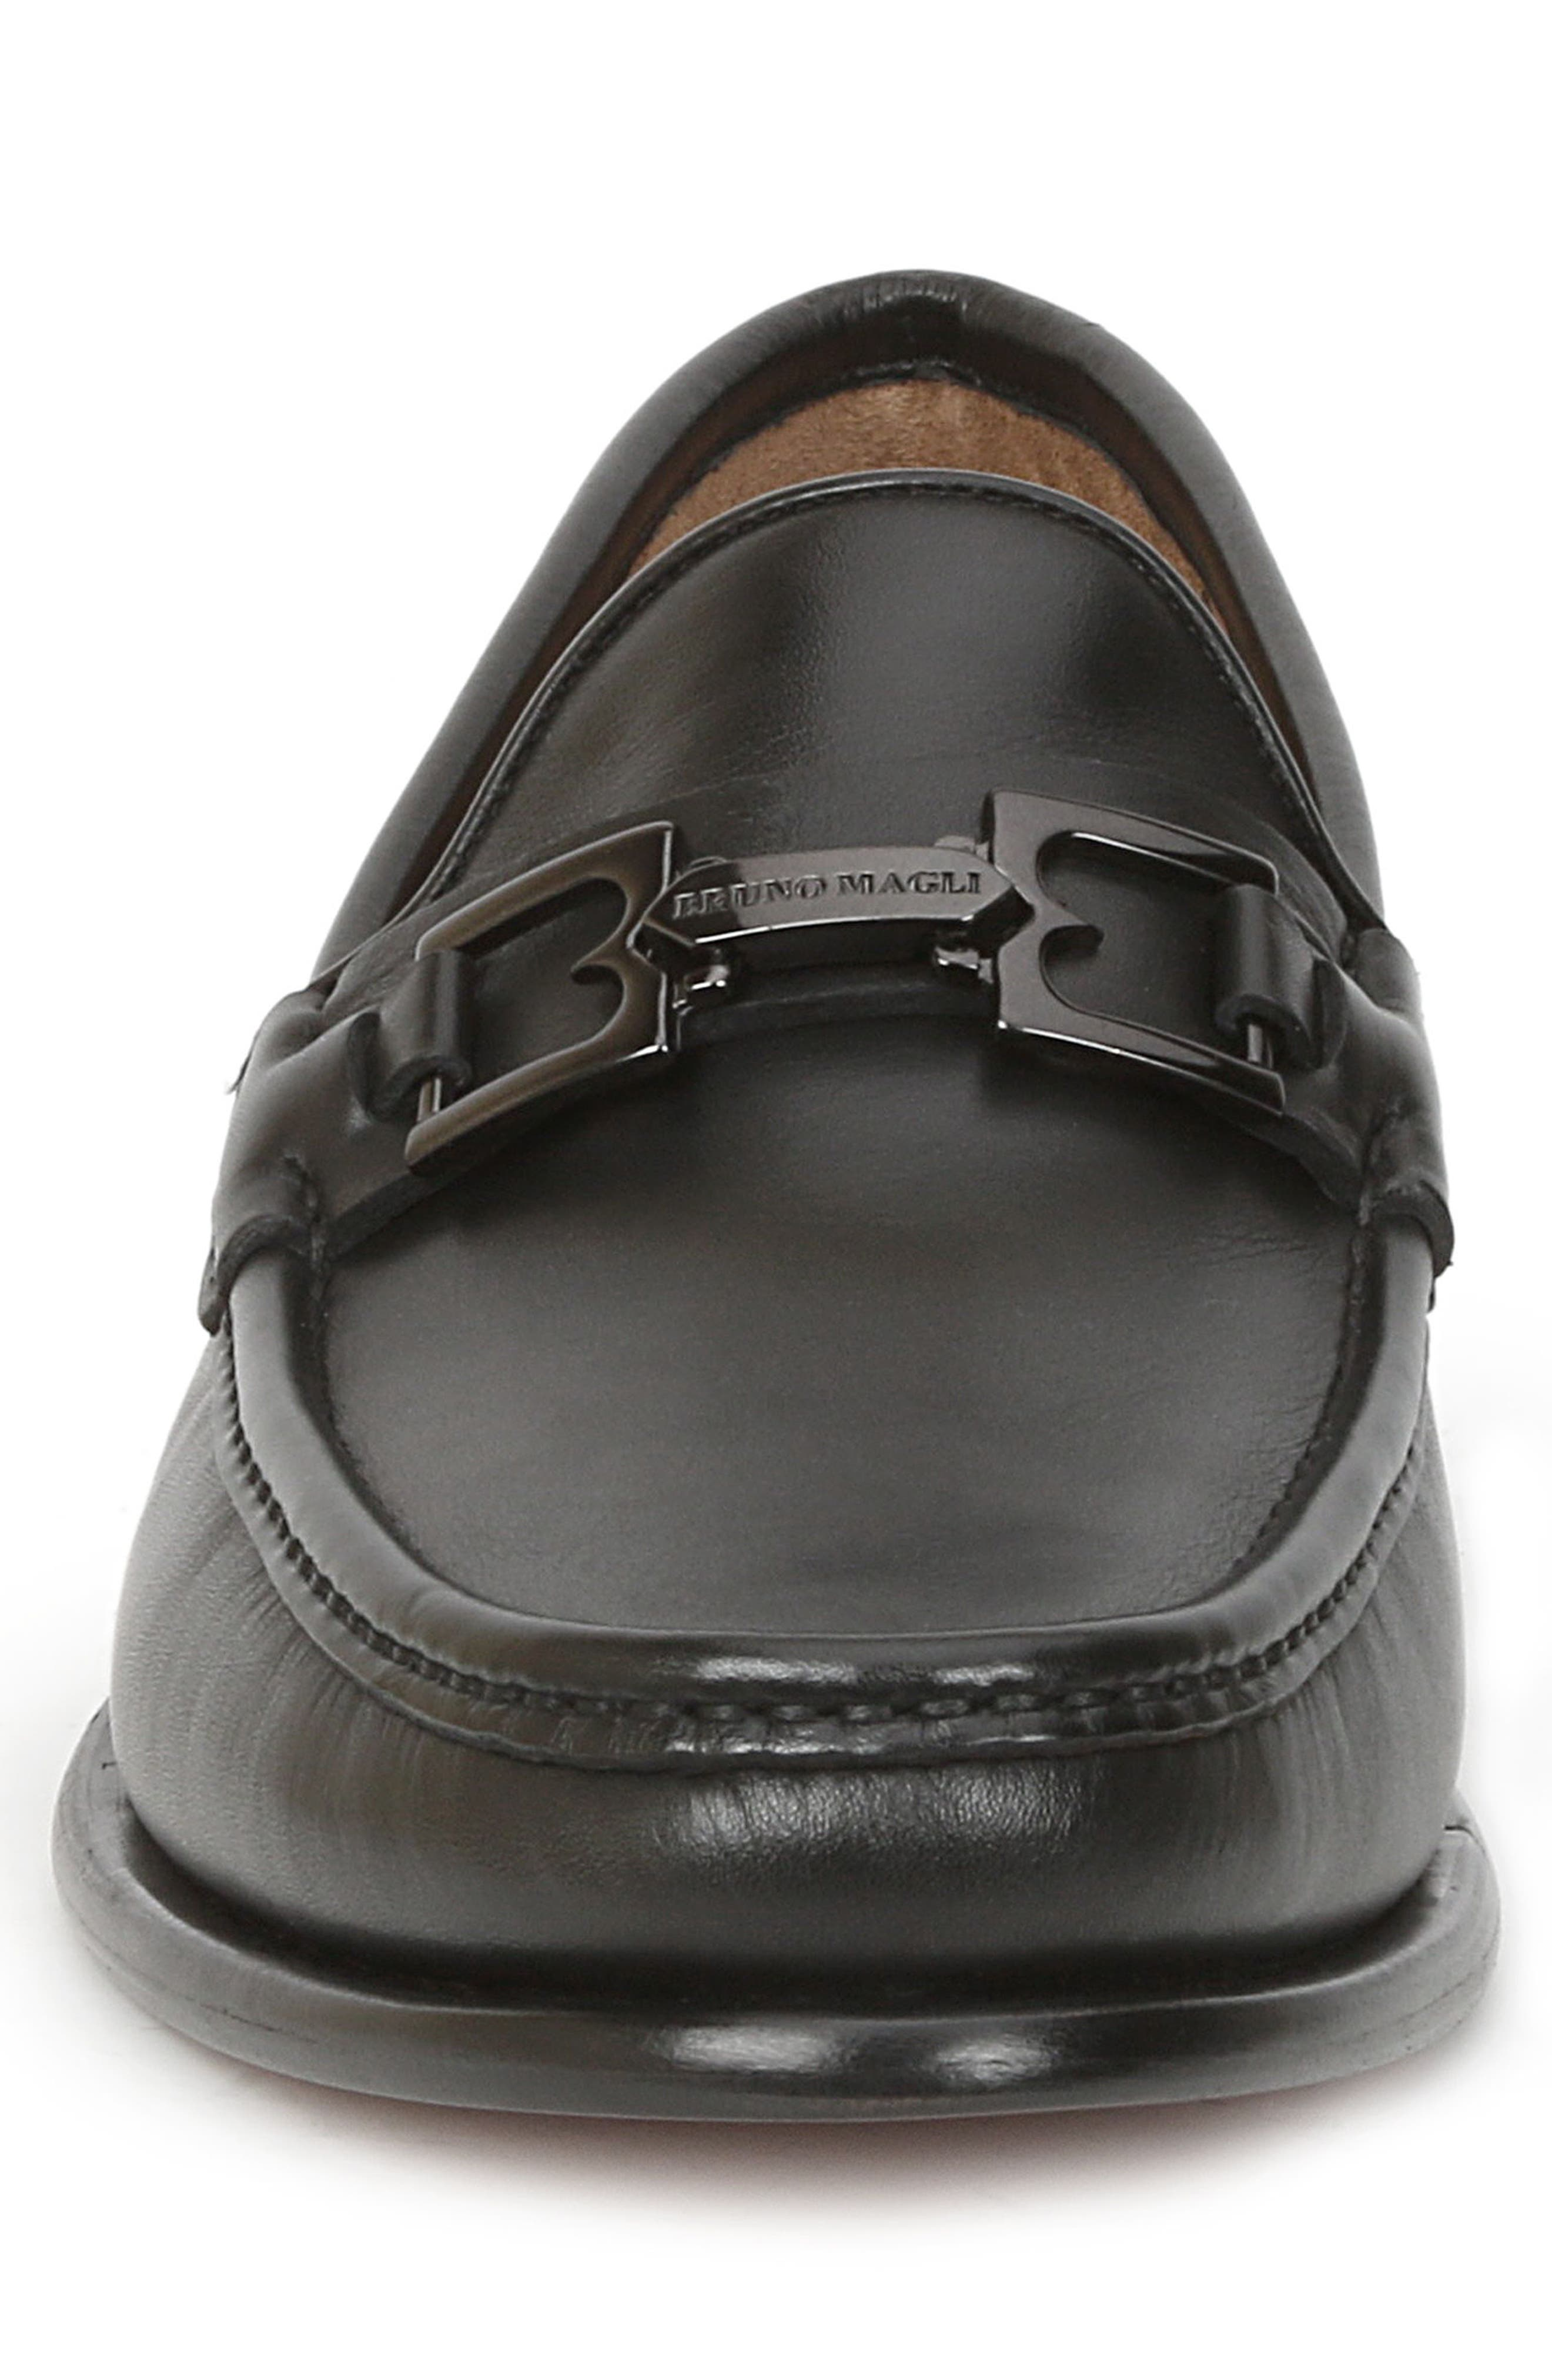 Enzo Bit Loafer,                             Alternate thumbnail 4, color,                             Black